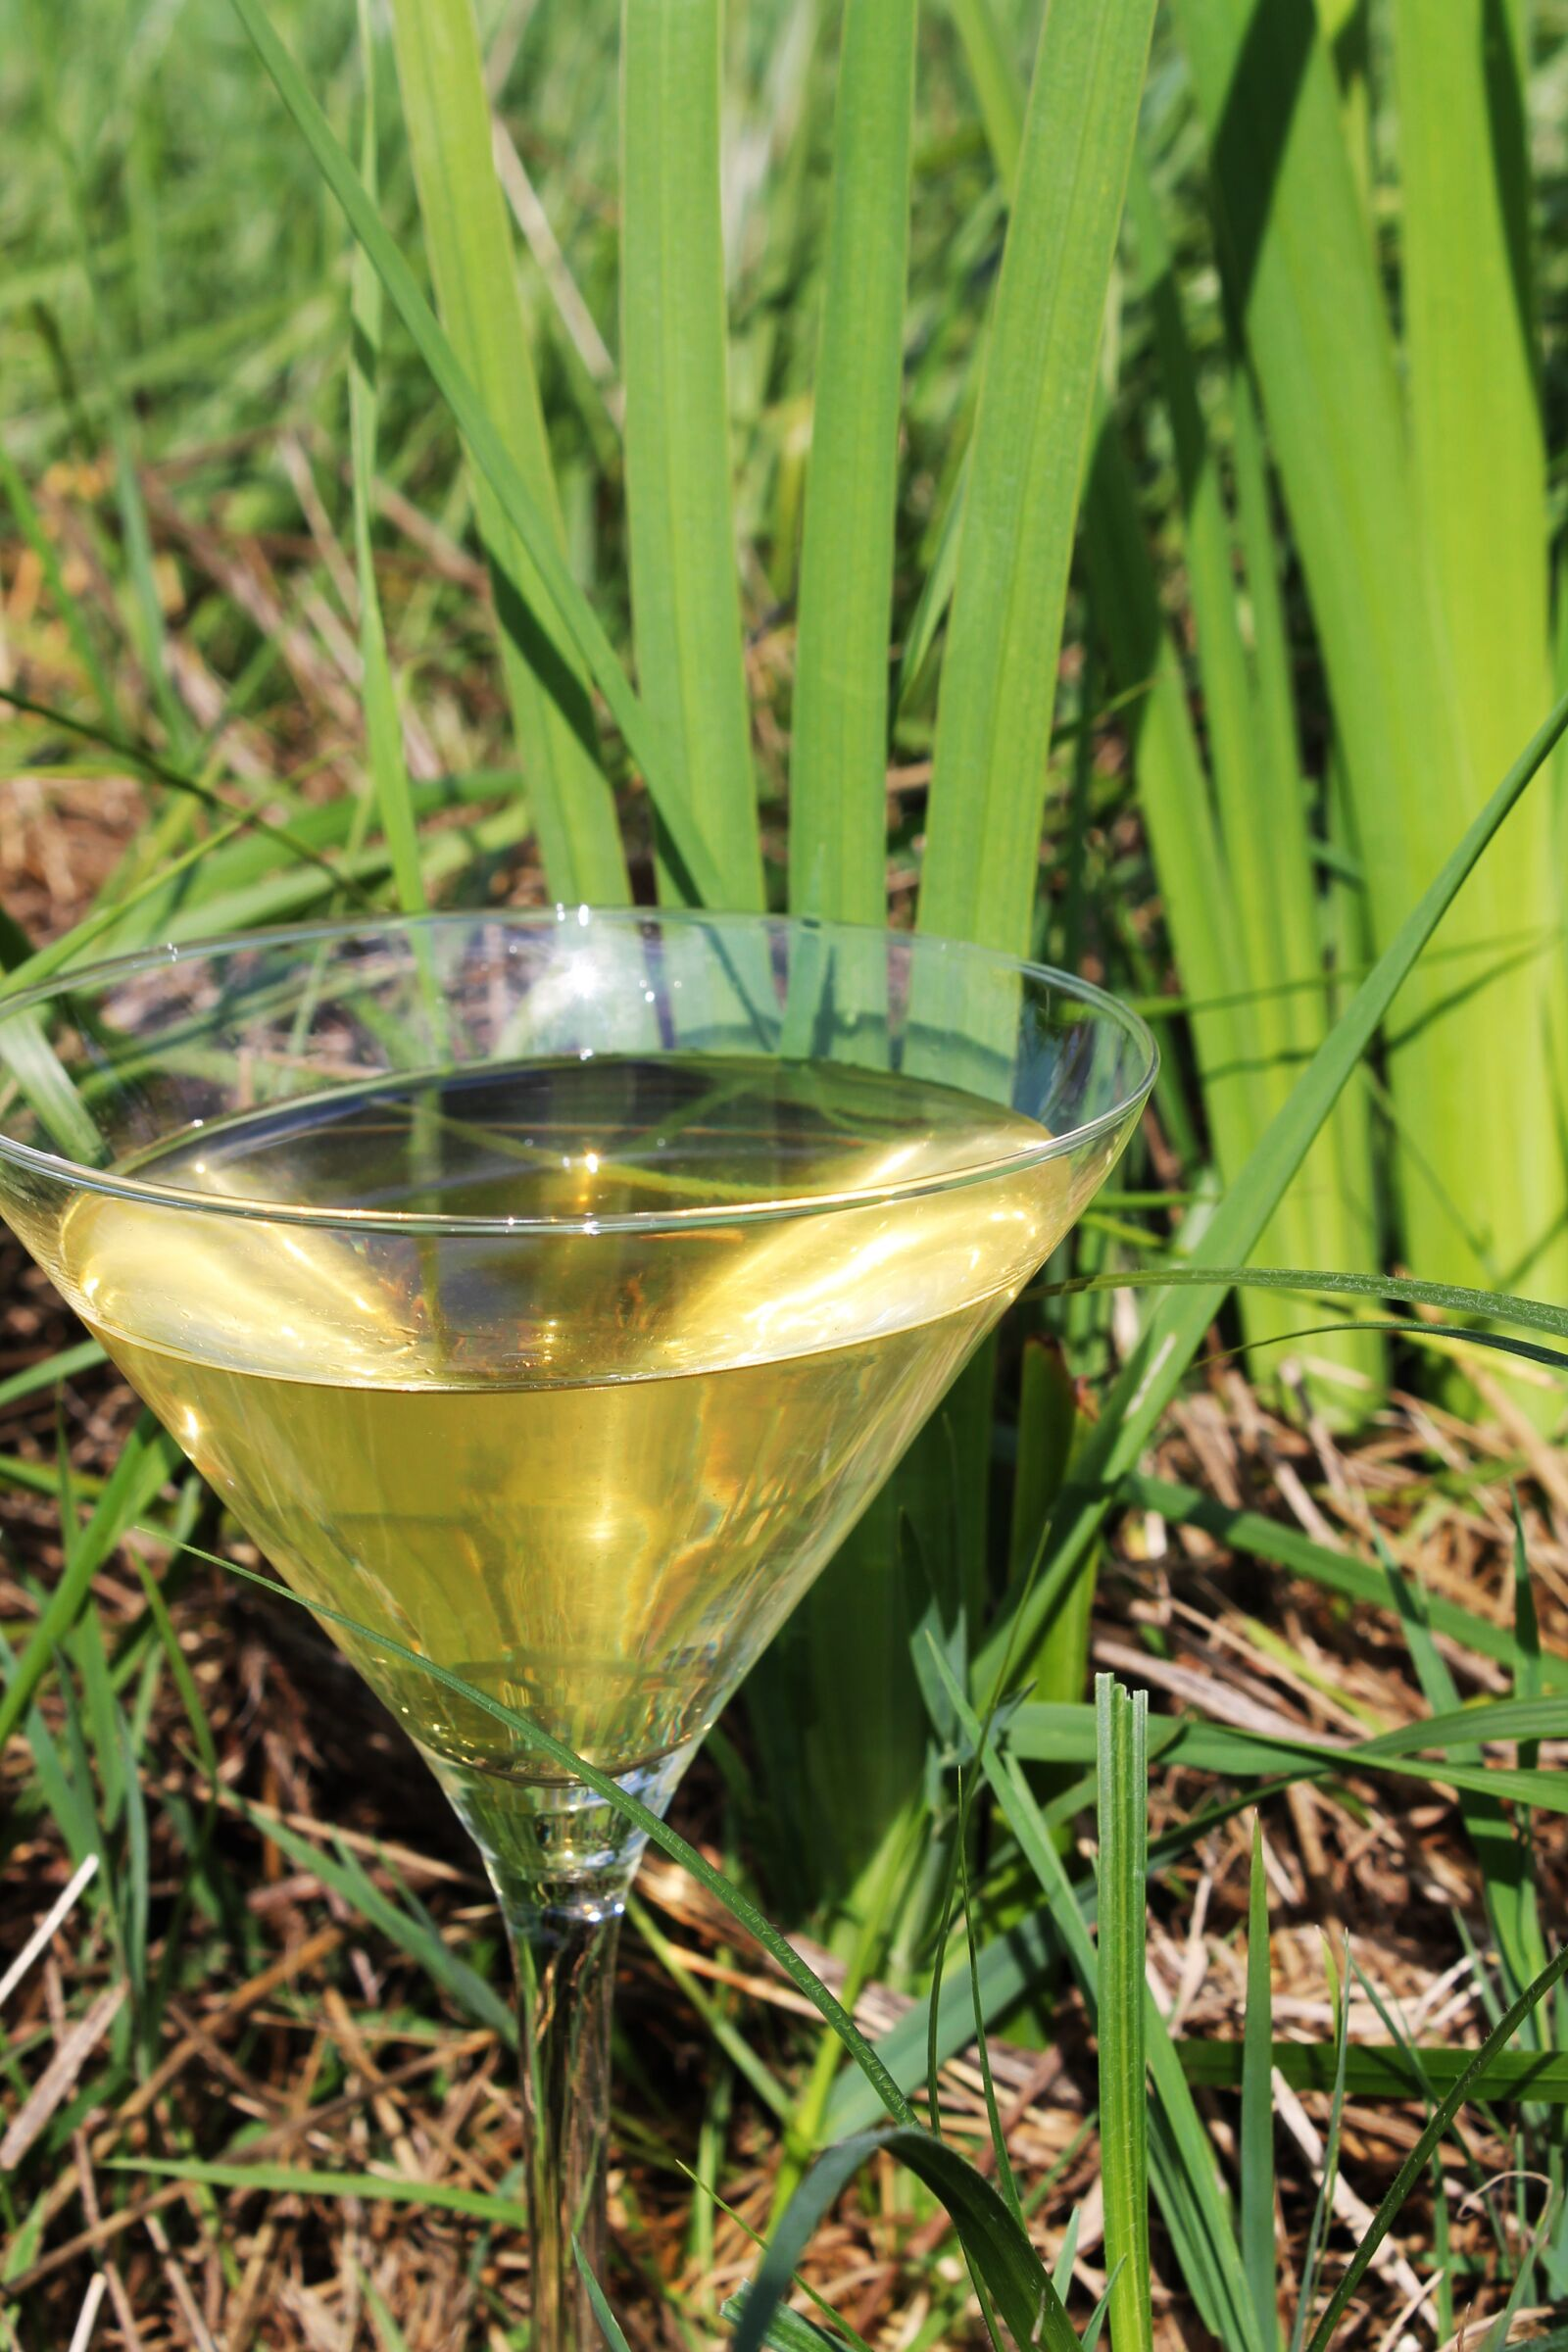 """Canon EOS 1100D (EOS Rebel T3 / EOS Kiss X50) sample photo. """"Cocktail, alcohol, nature"""" photography"""